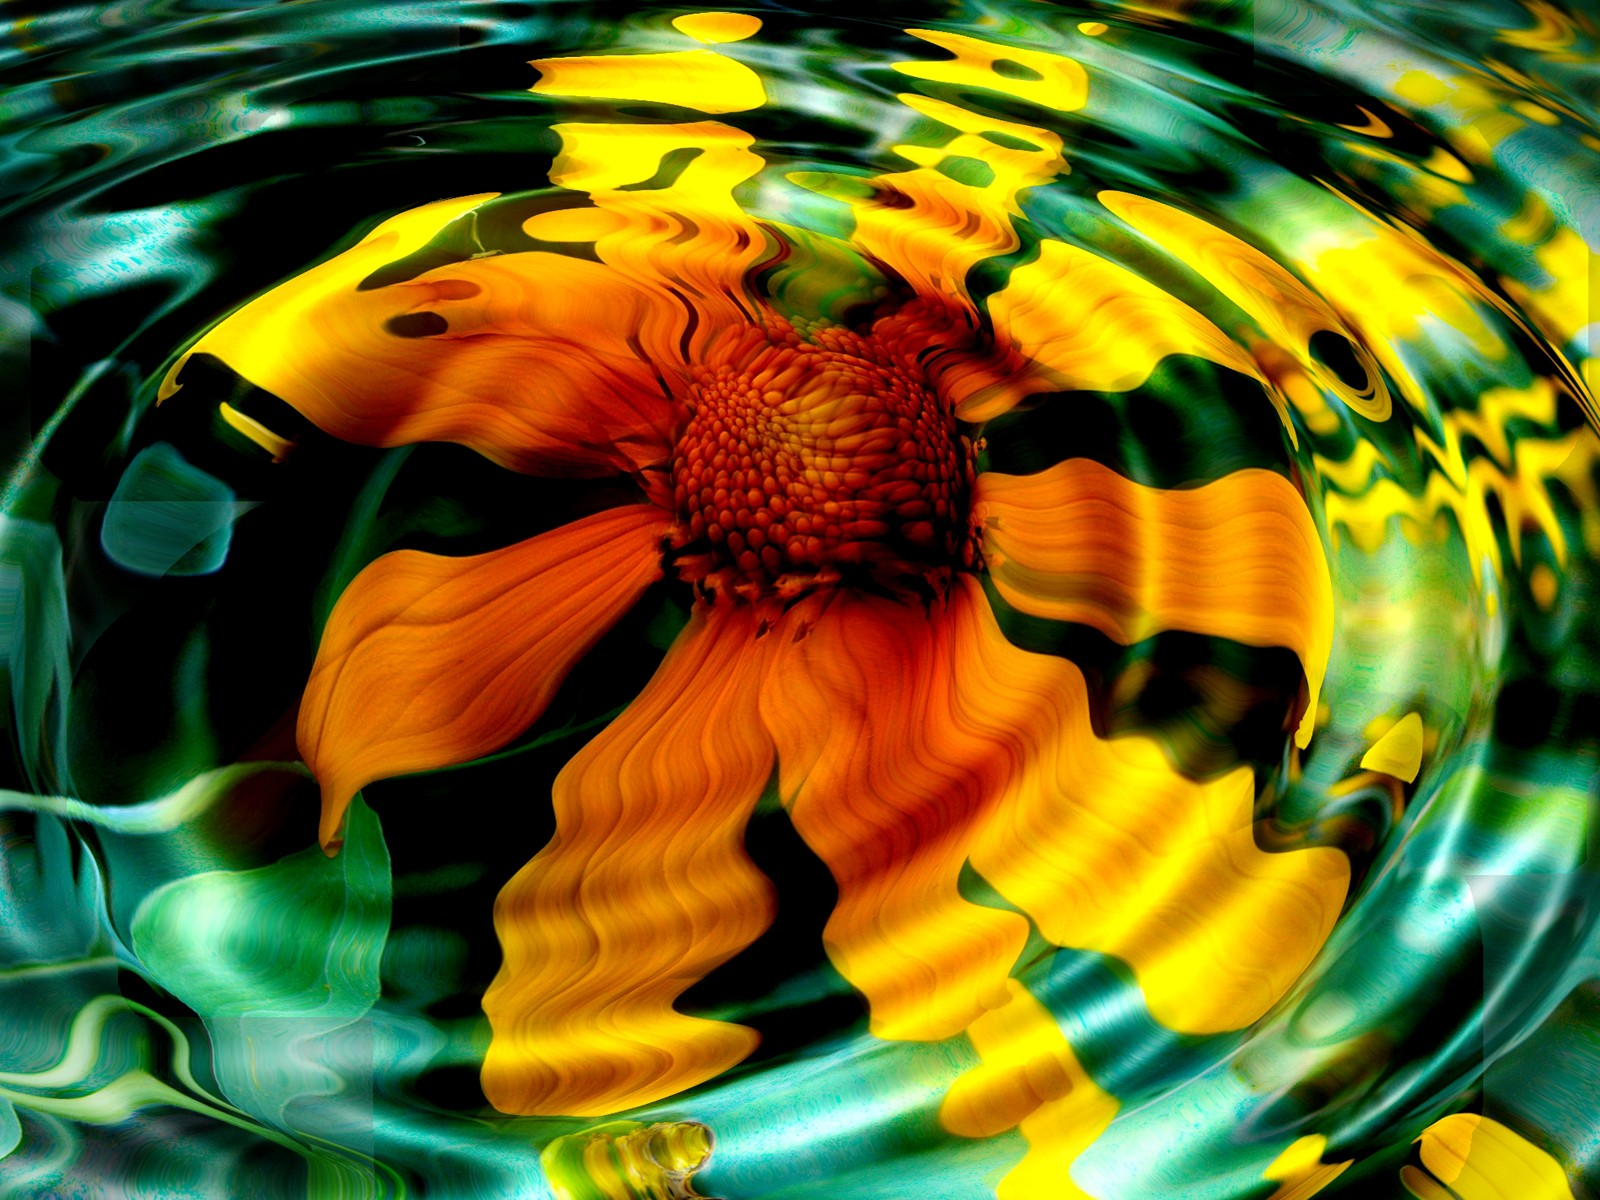 http://1.bp.blogspot.com/-tACwi5p2dVk/TqwDkYbKgBI/AAAAAAAADkk/lIRLjwXrux4/s1600/flower_reflection_desktop_wallpaper_49965.jpg